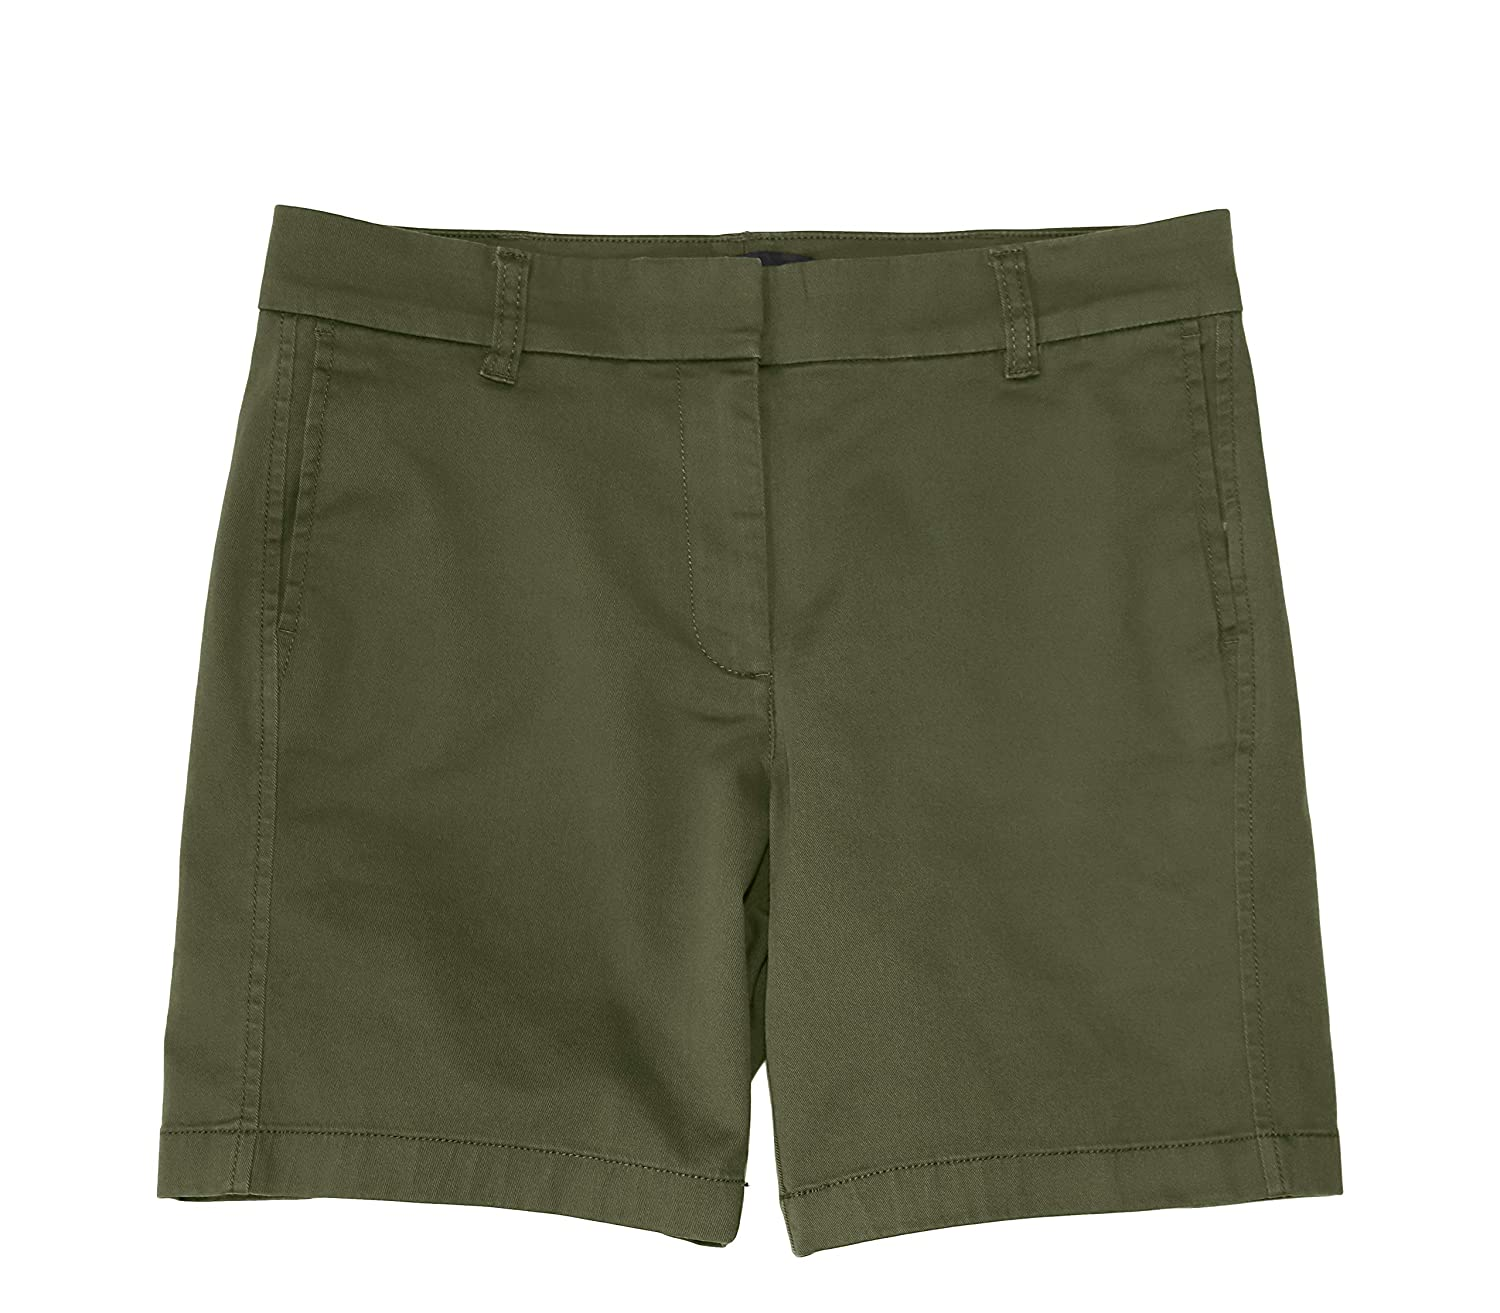 lowest discount outlet on sale great fit J.Crew Women's 7 Inch Chino Stretch Cotton Shorts